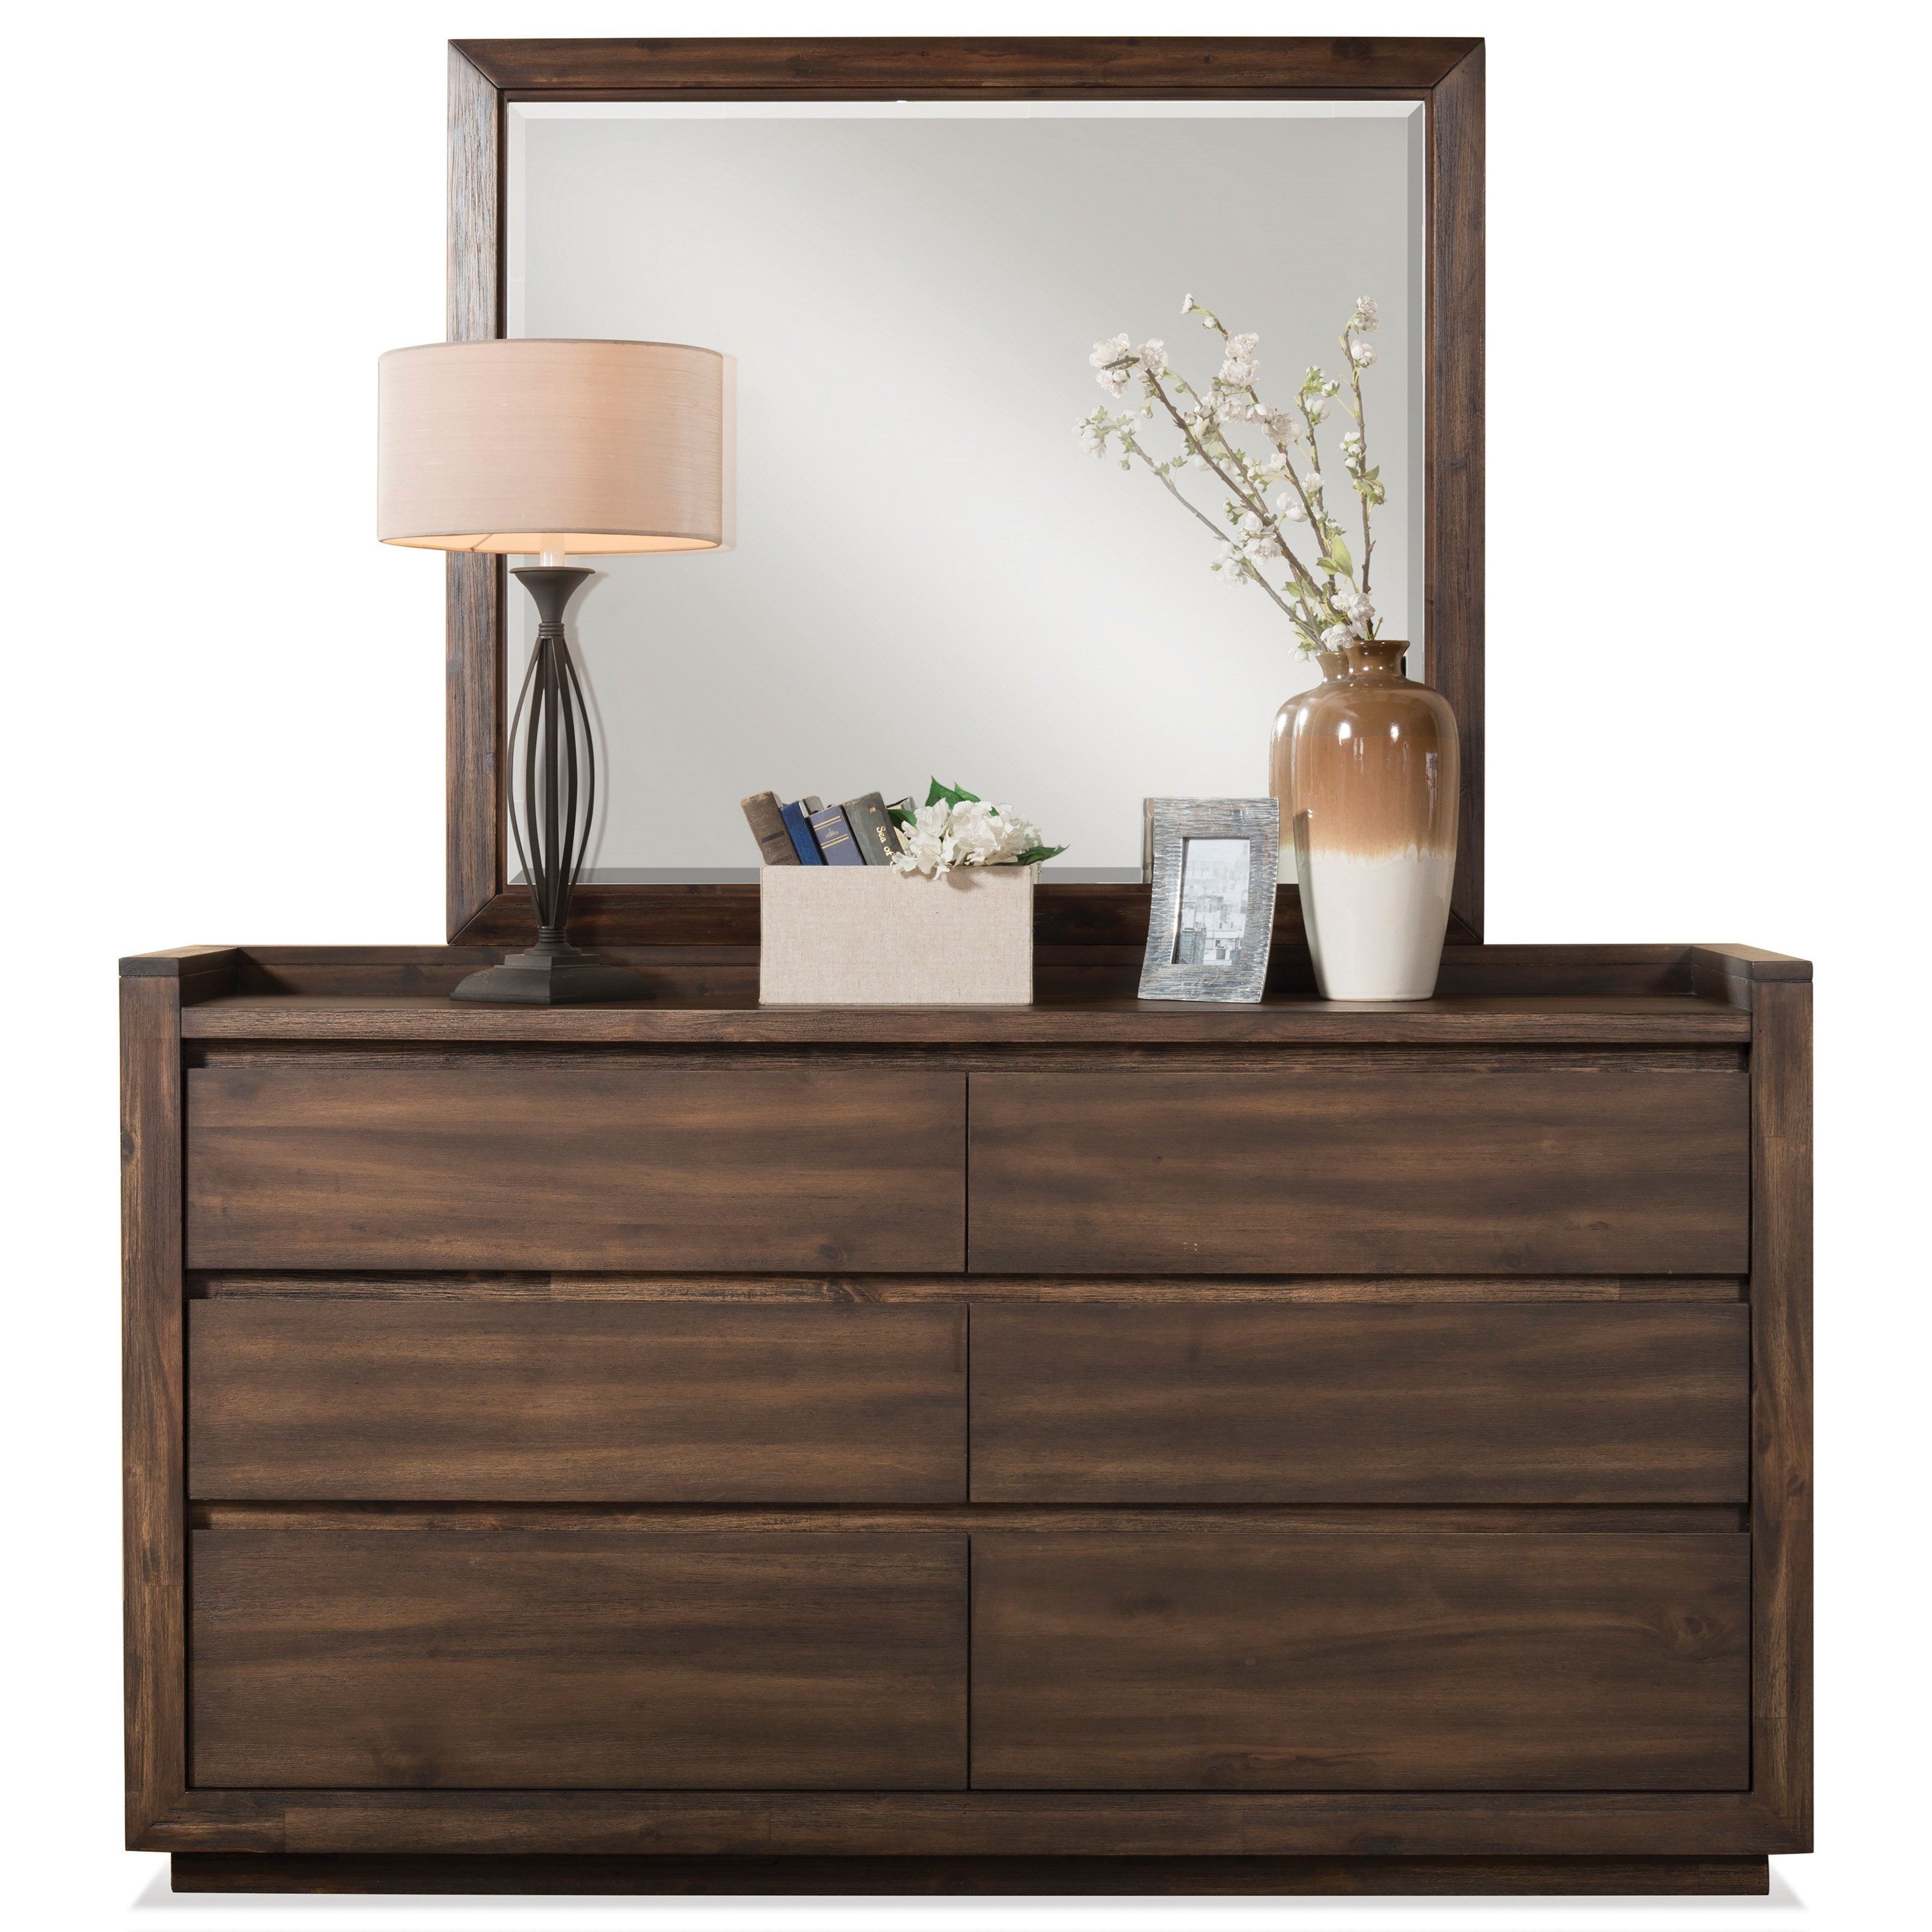 acacia sideboards sideboard consoles wood and dresser vancouver